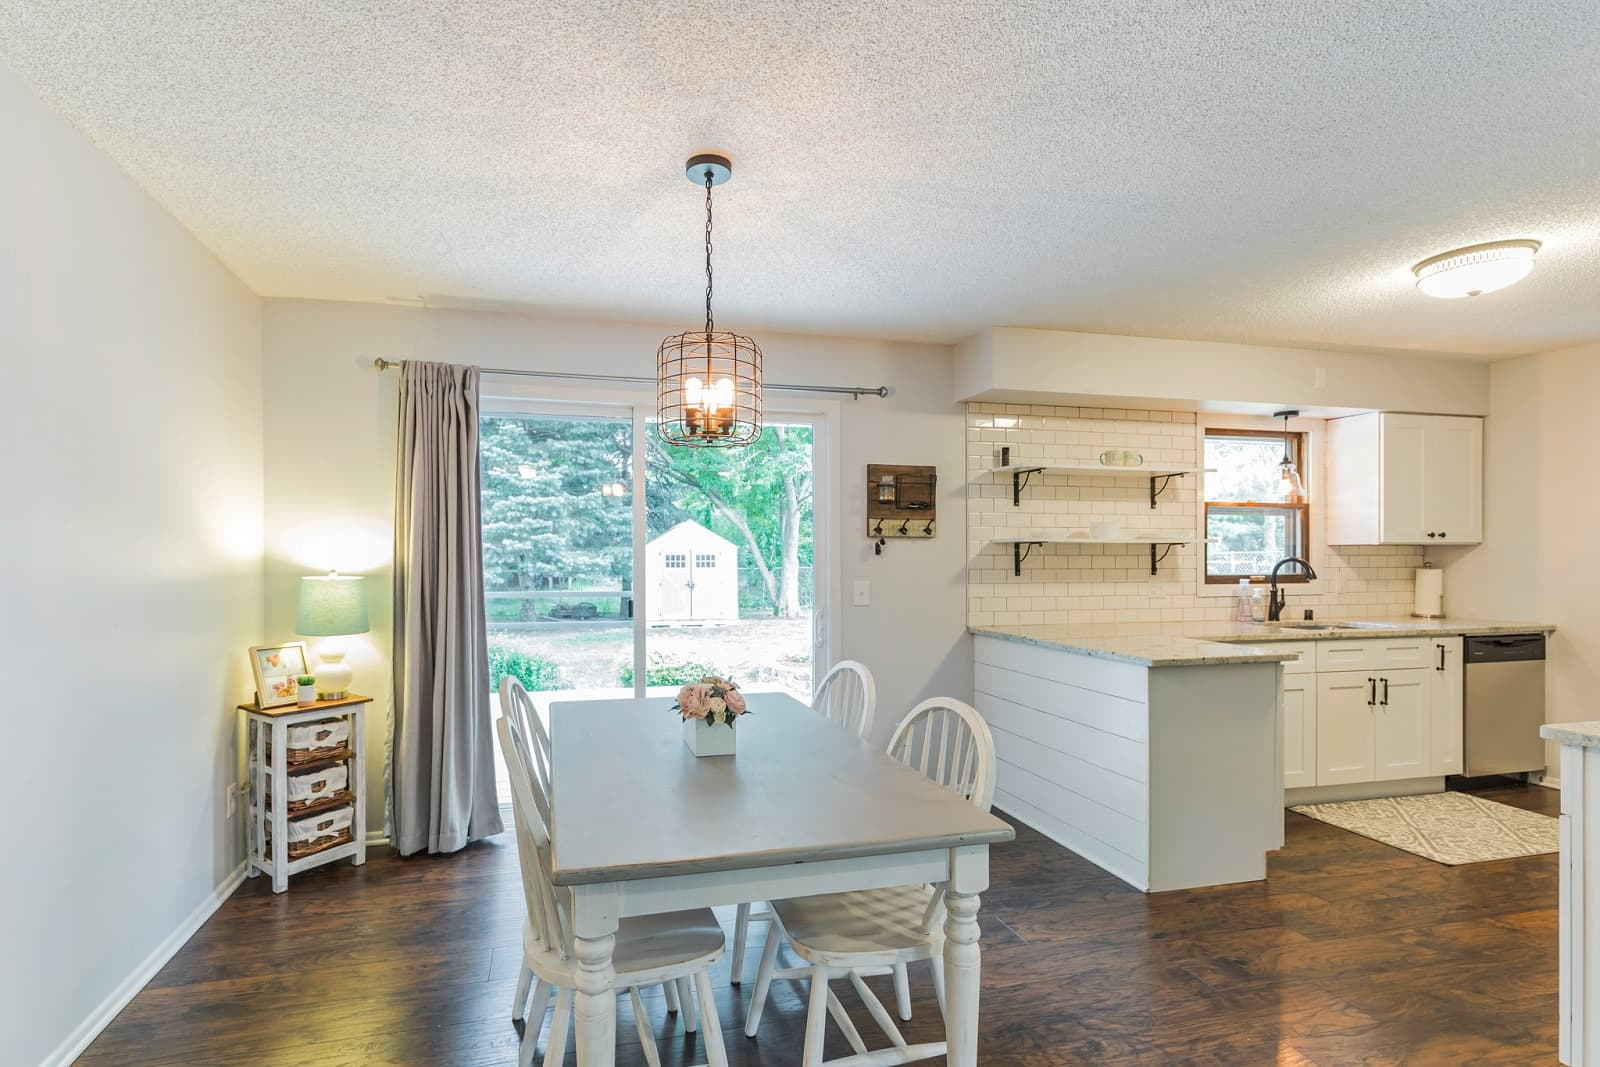 Real Estate Photography in Minneapolis - MN - Kitchen & Dining Area View